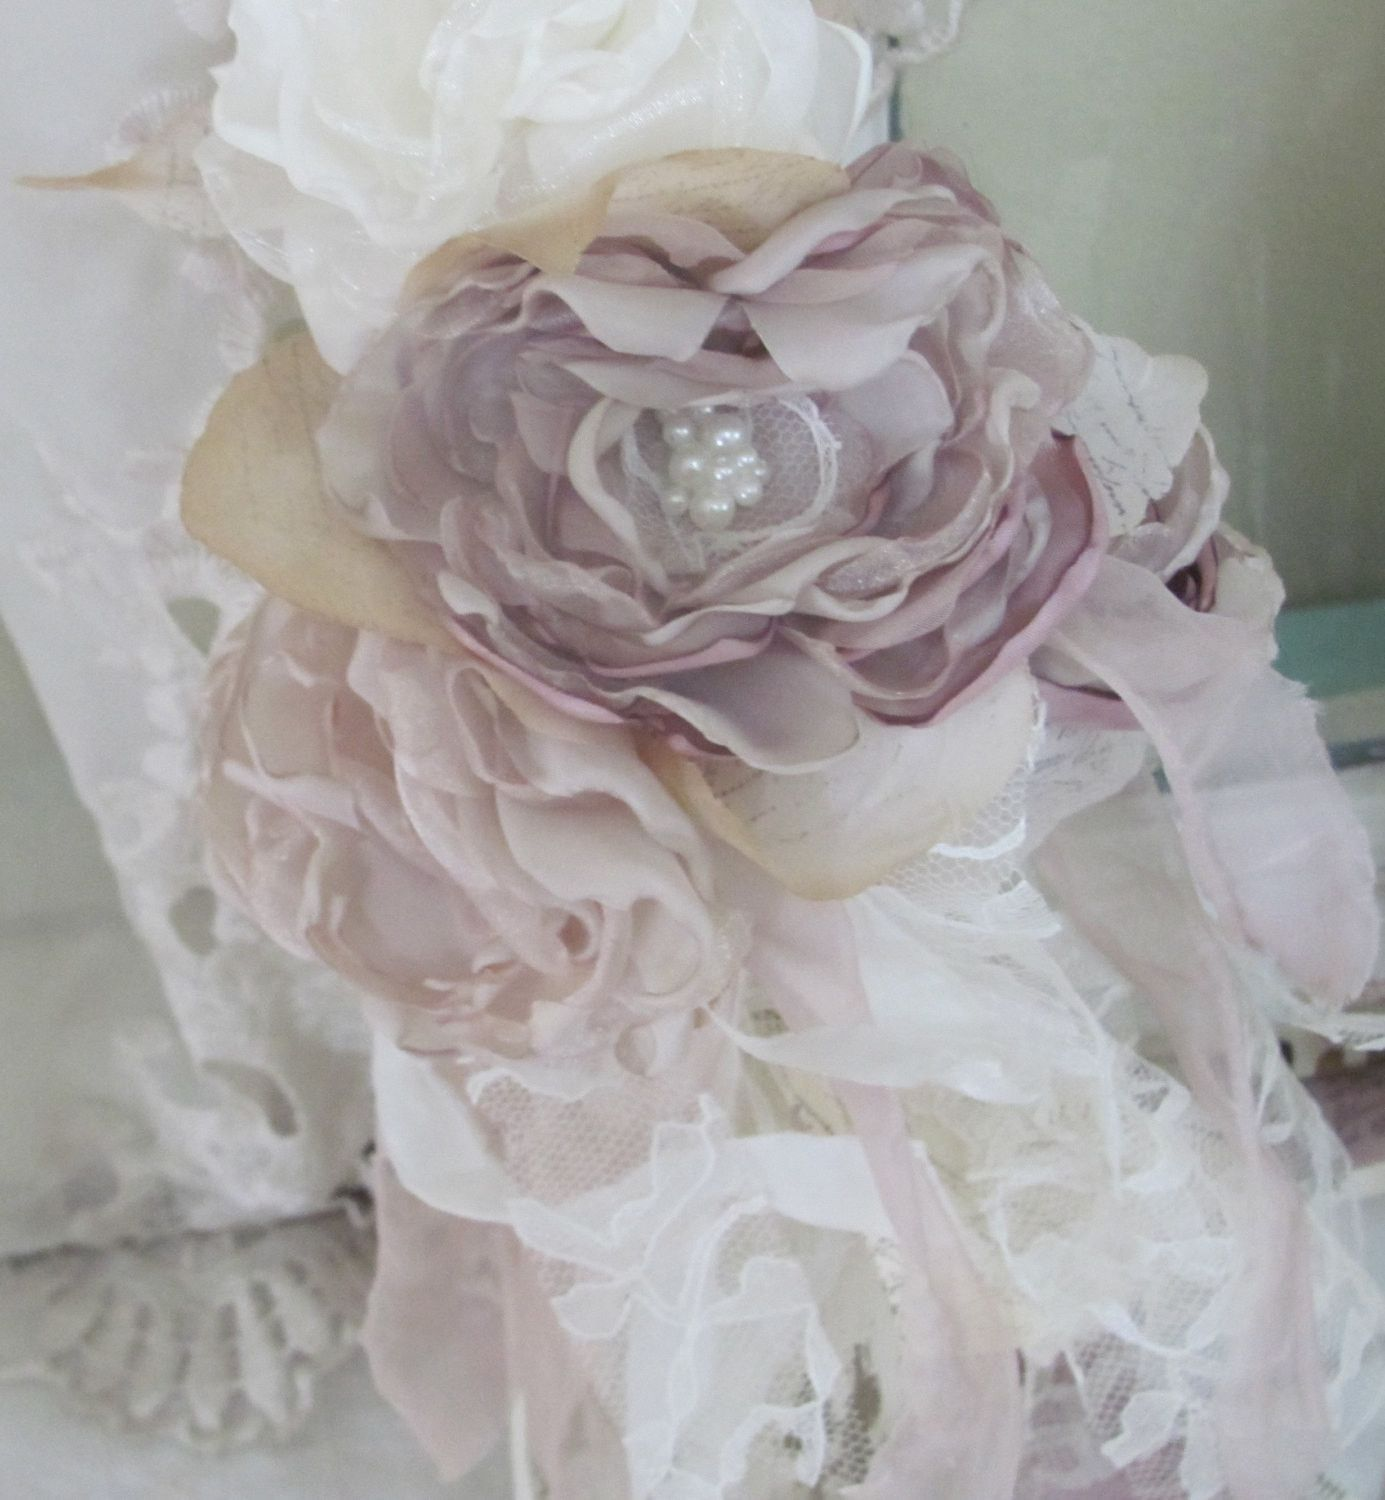 Wedding Flowers Reception Decorations Dusty Rose Fabric Flowers Set of 12